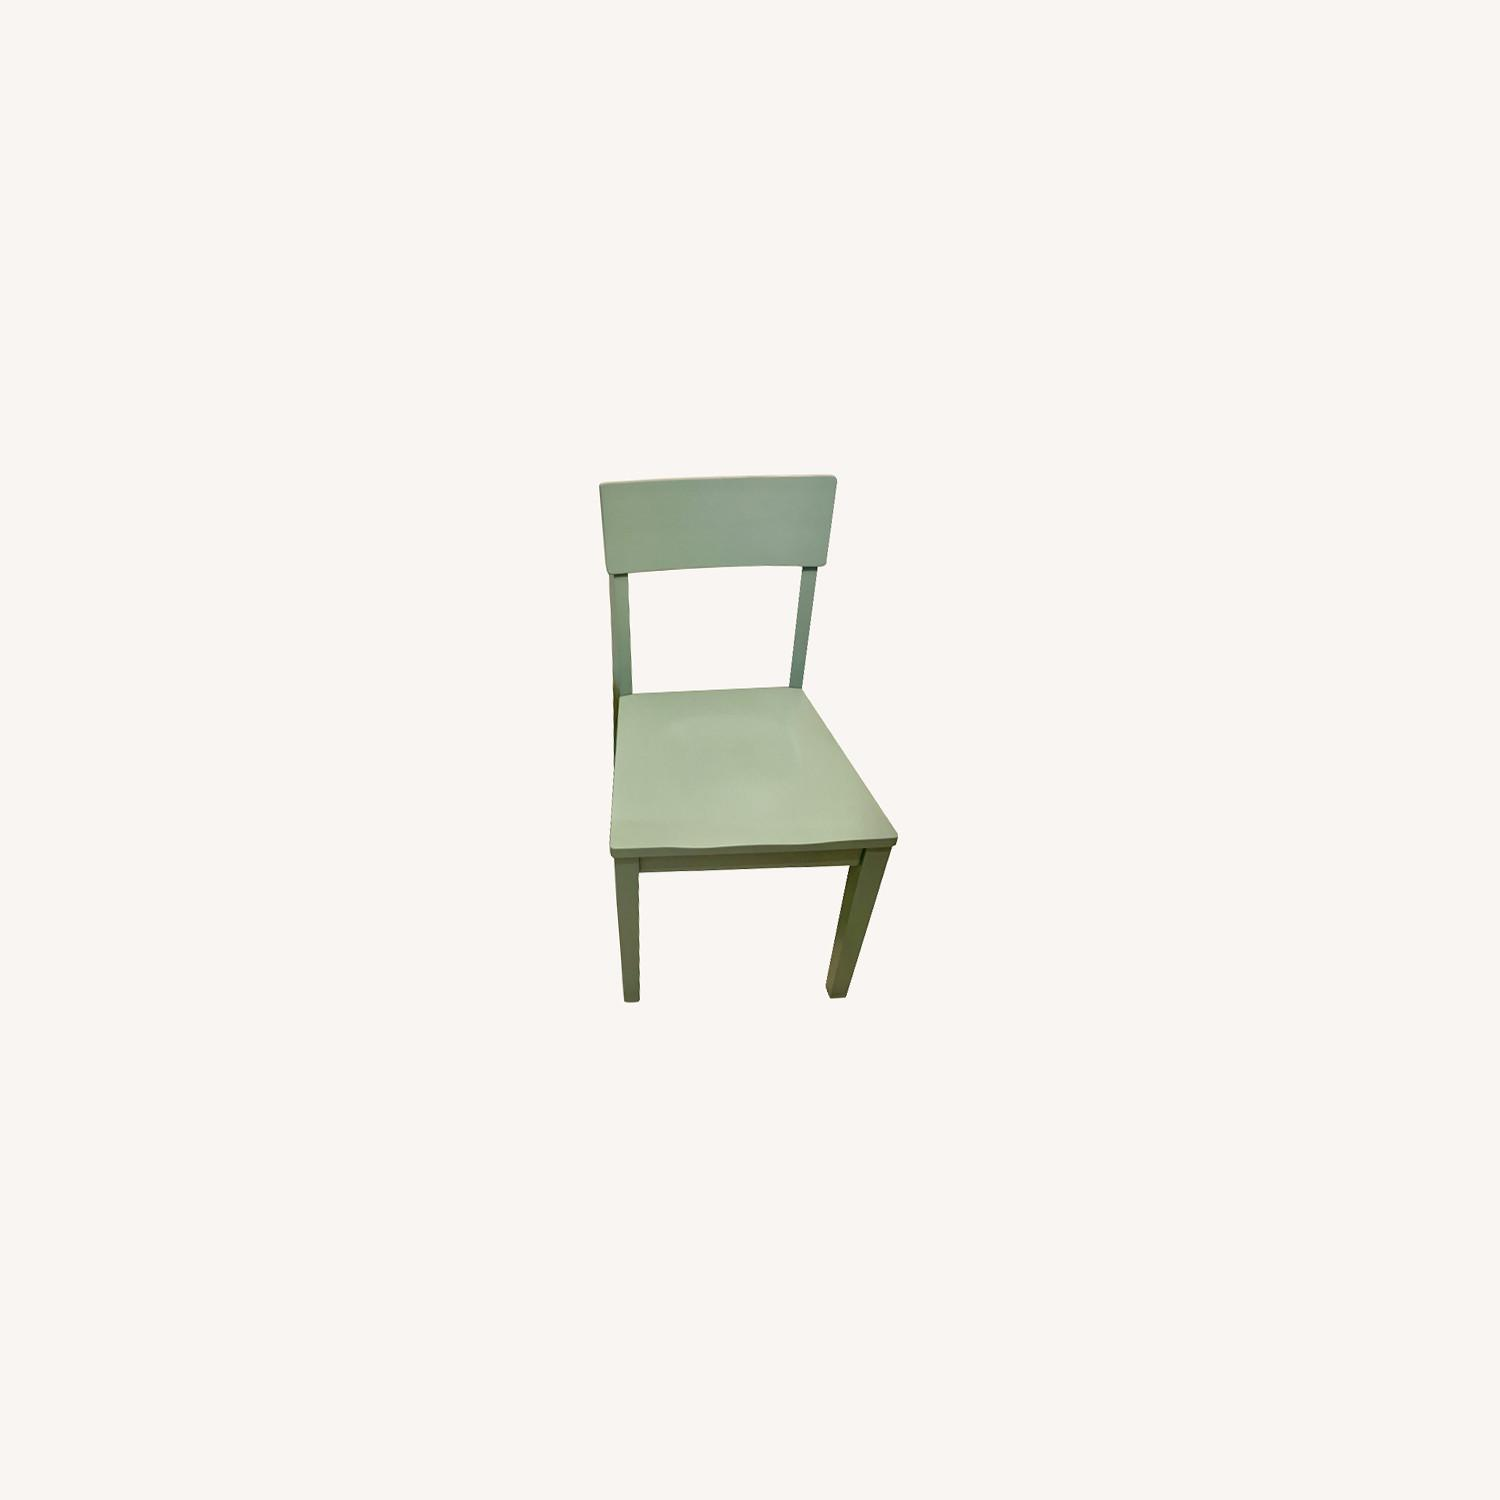 Target Armless Bethesda Modern Dining Chairs - image-0